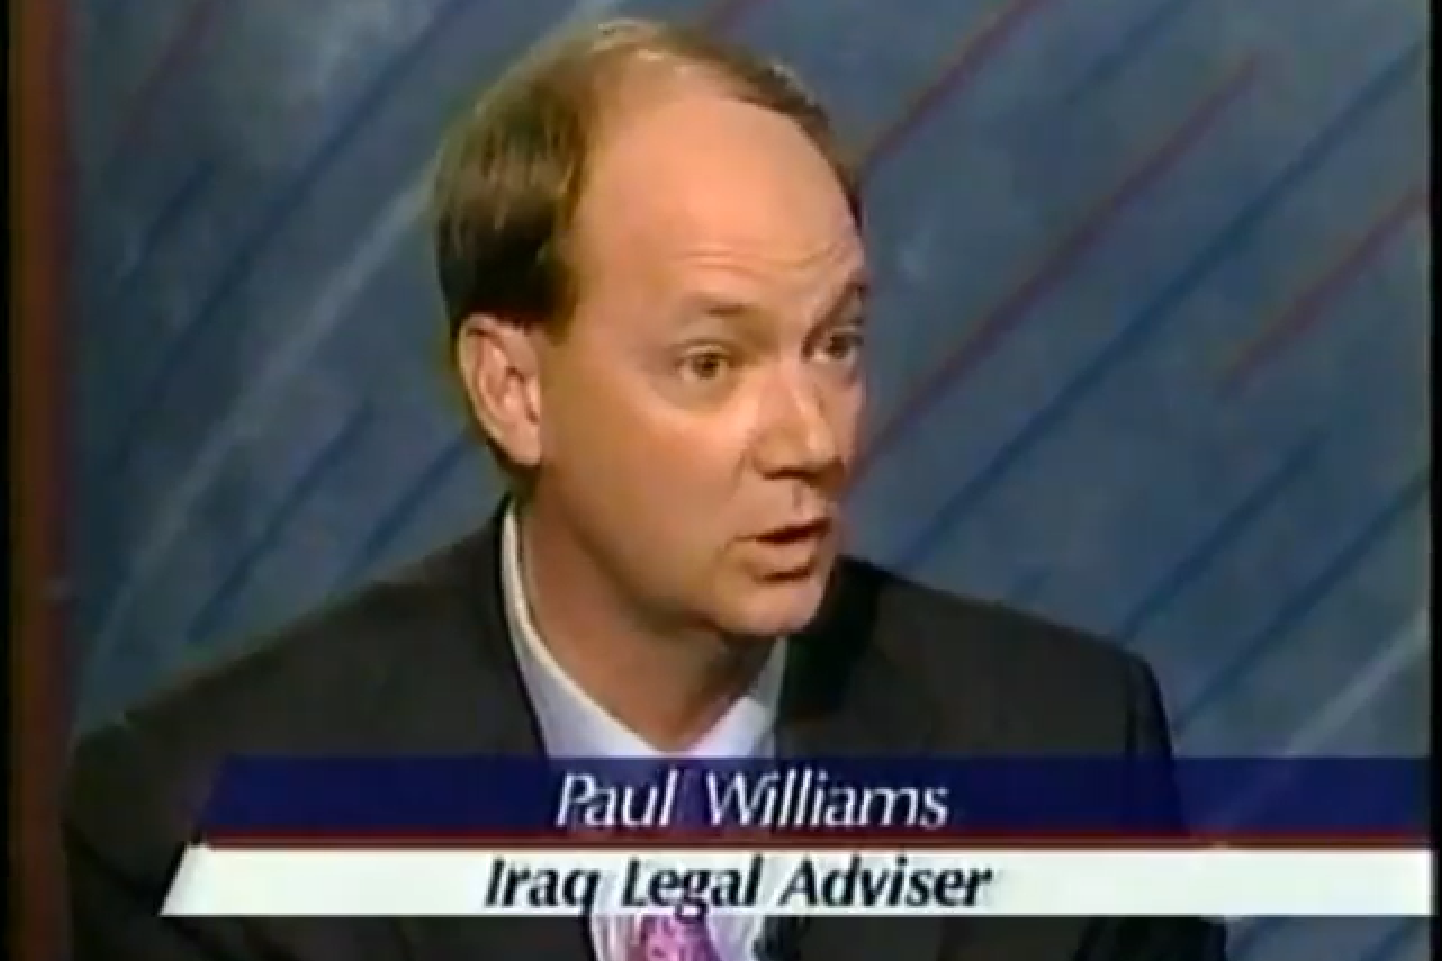 Dr. Paul Williams on the Jim Lehrer News Hour with Margaret Warner discussing the Iraq Constitution.